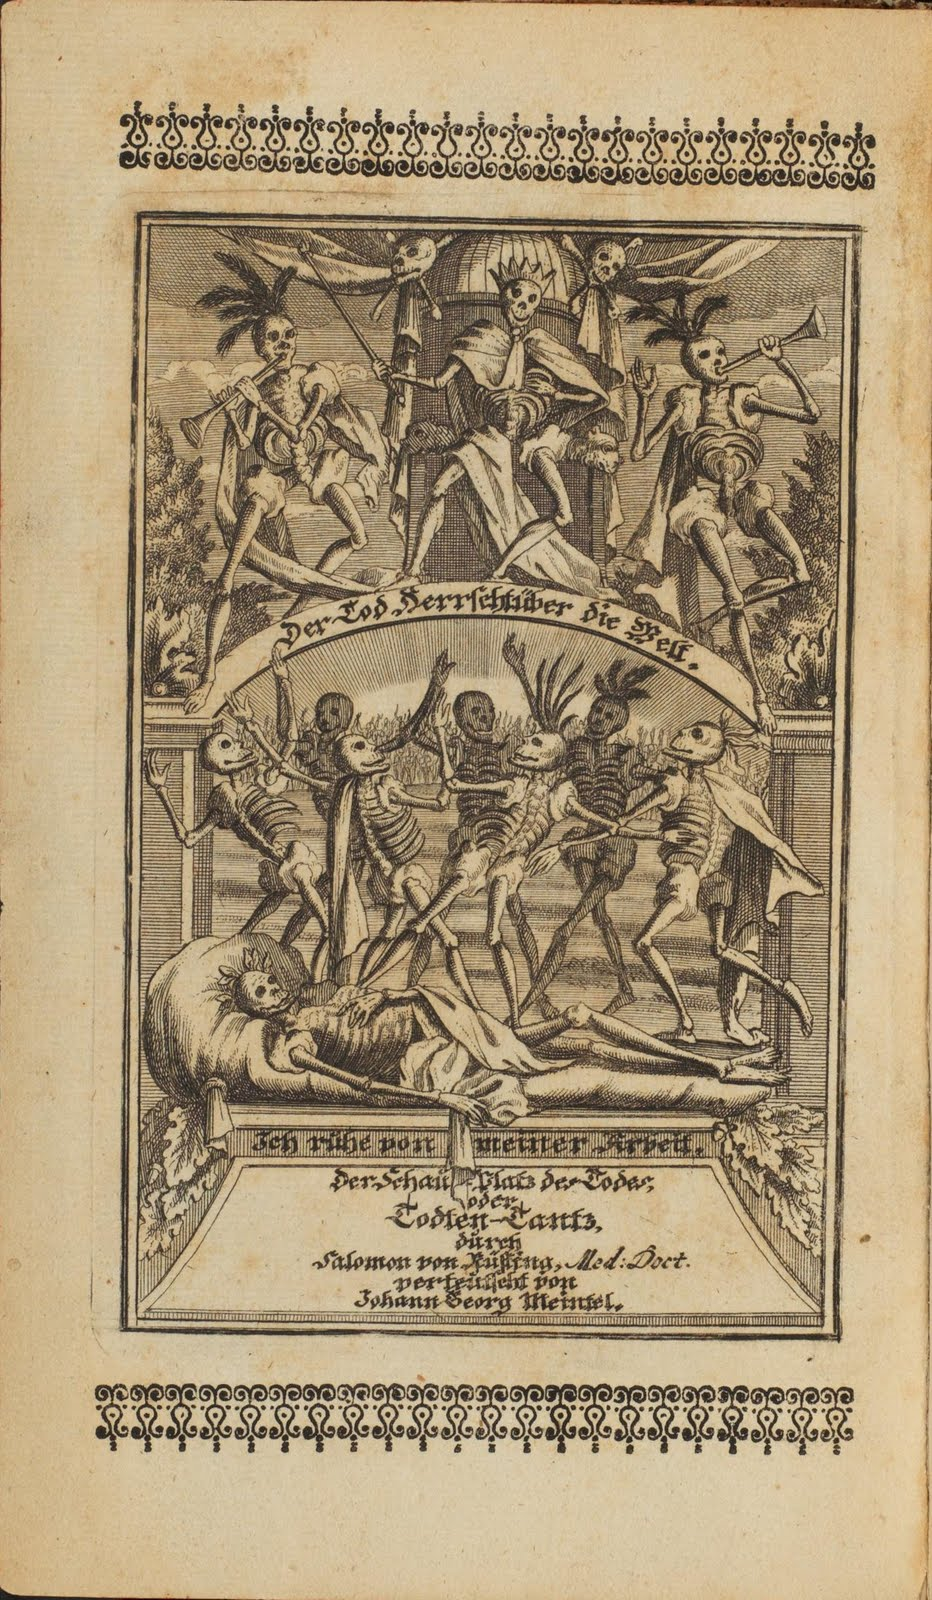 many dance of death skeletons celebrate, blowing horns and wearing headdresses